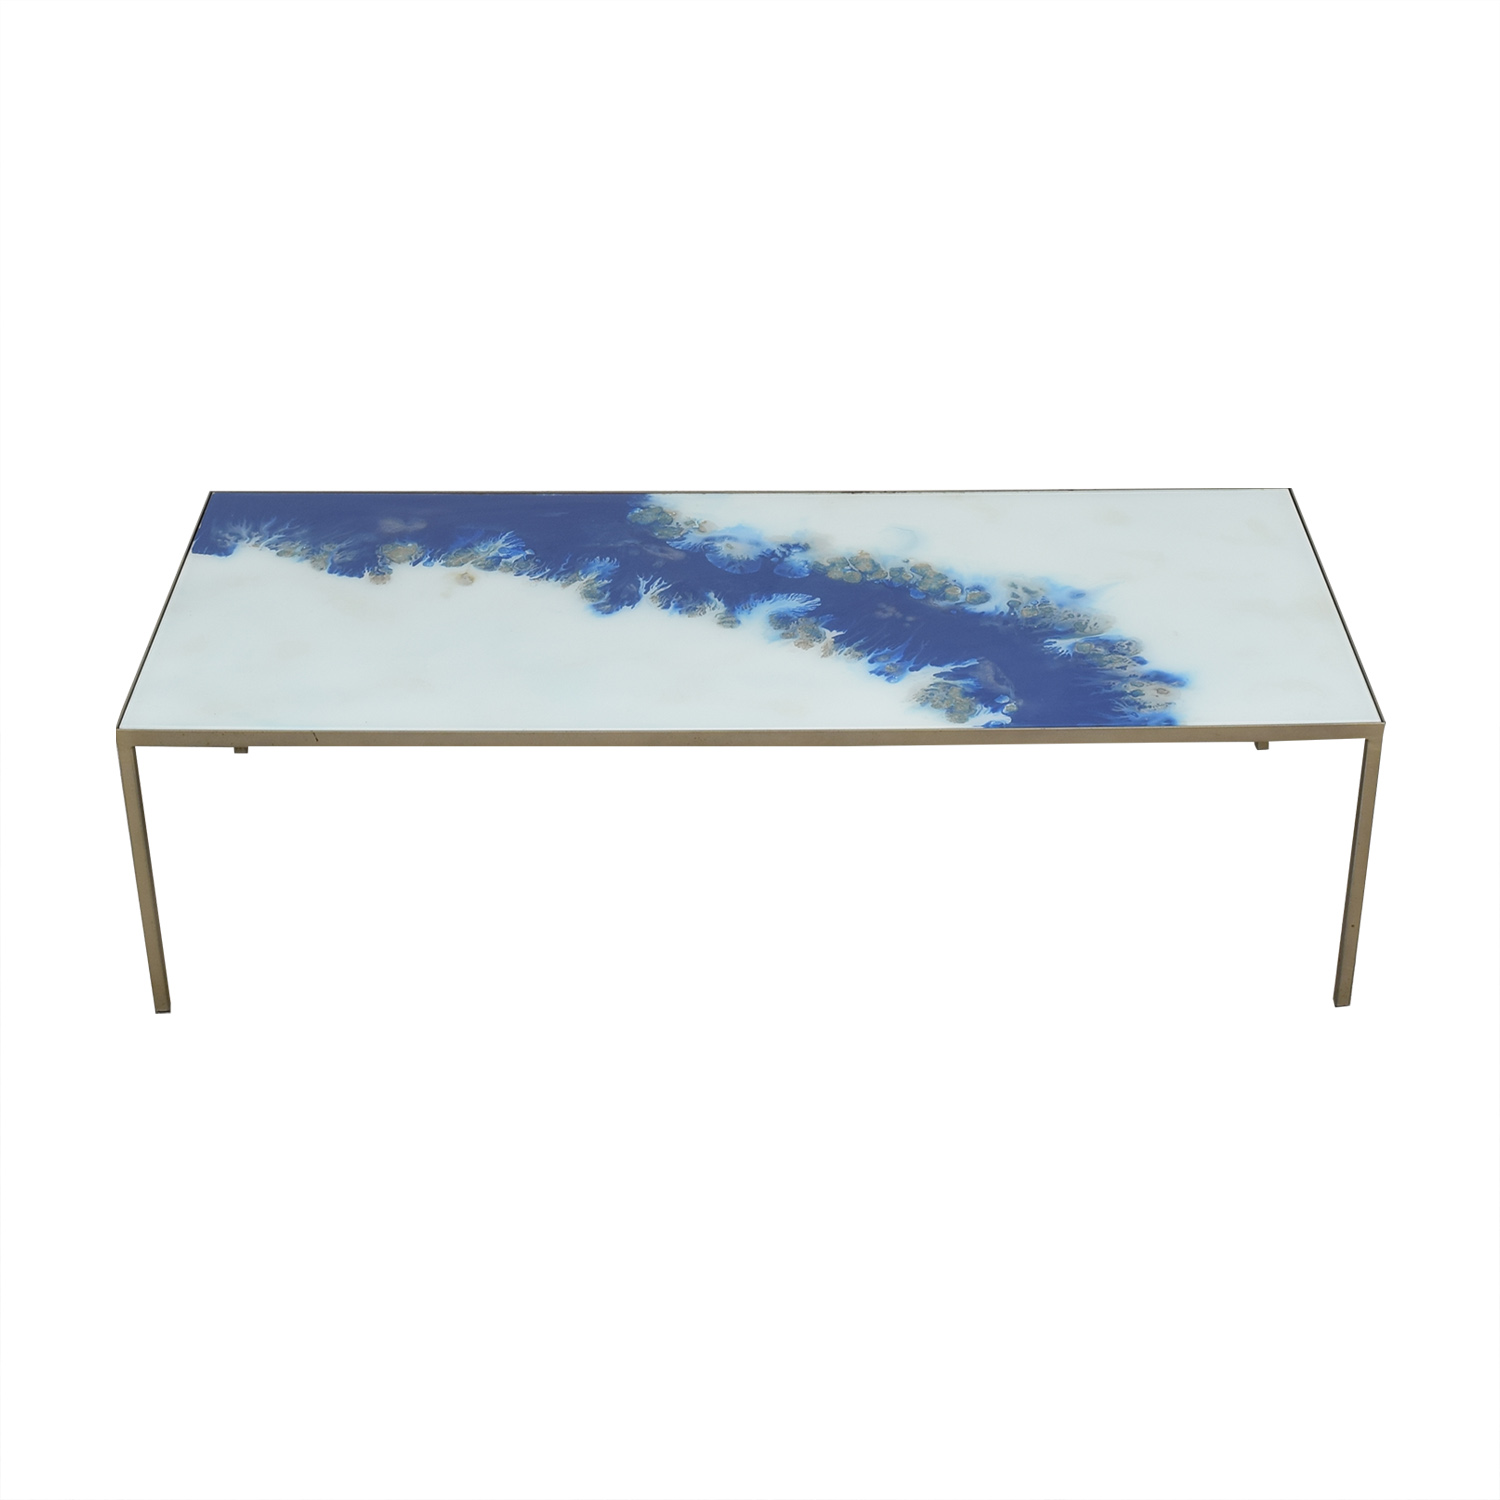 West Elm West Elm Cosmos Coffee Table multi